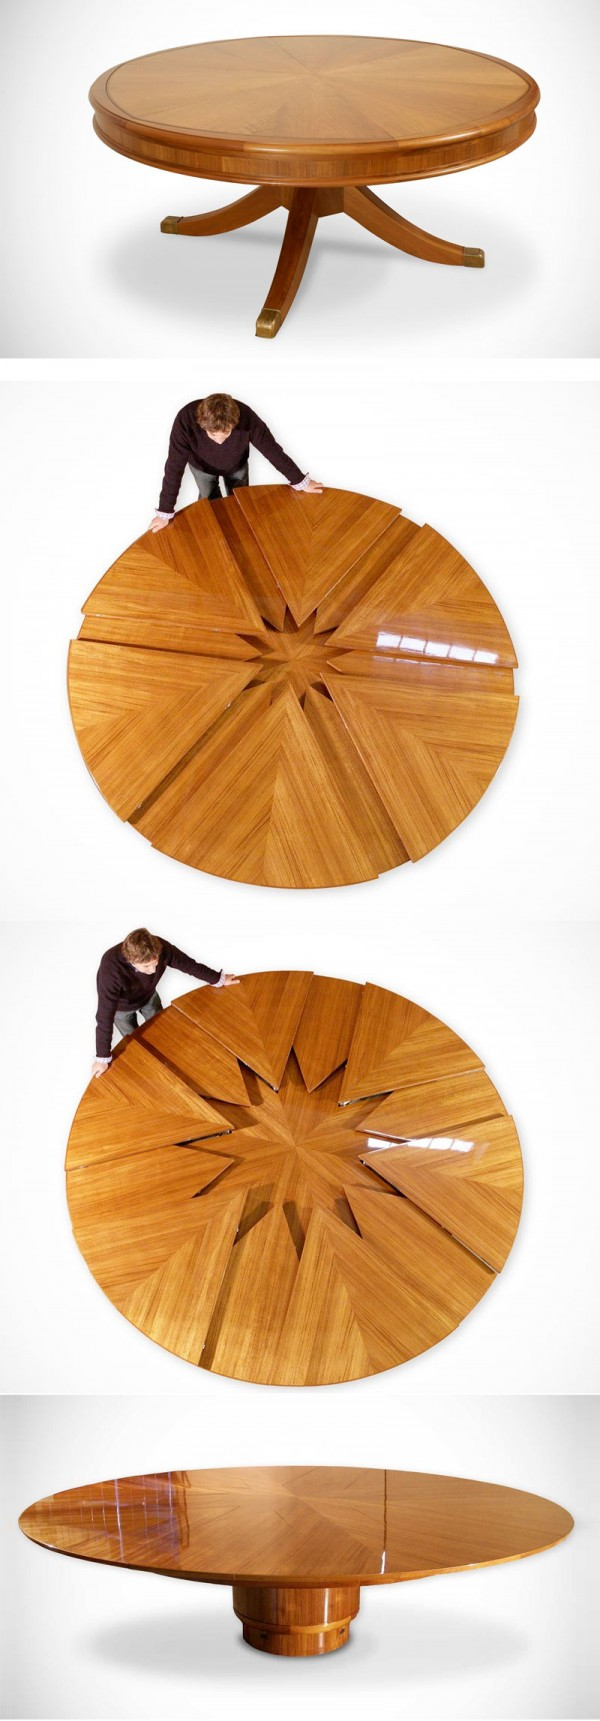 29-Expandable-round-table